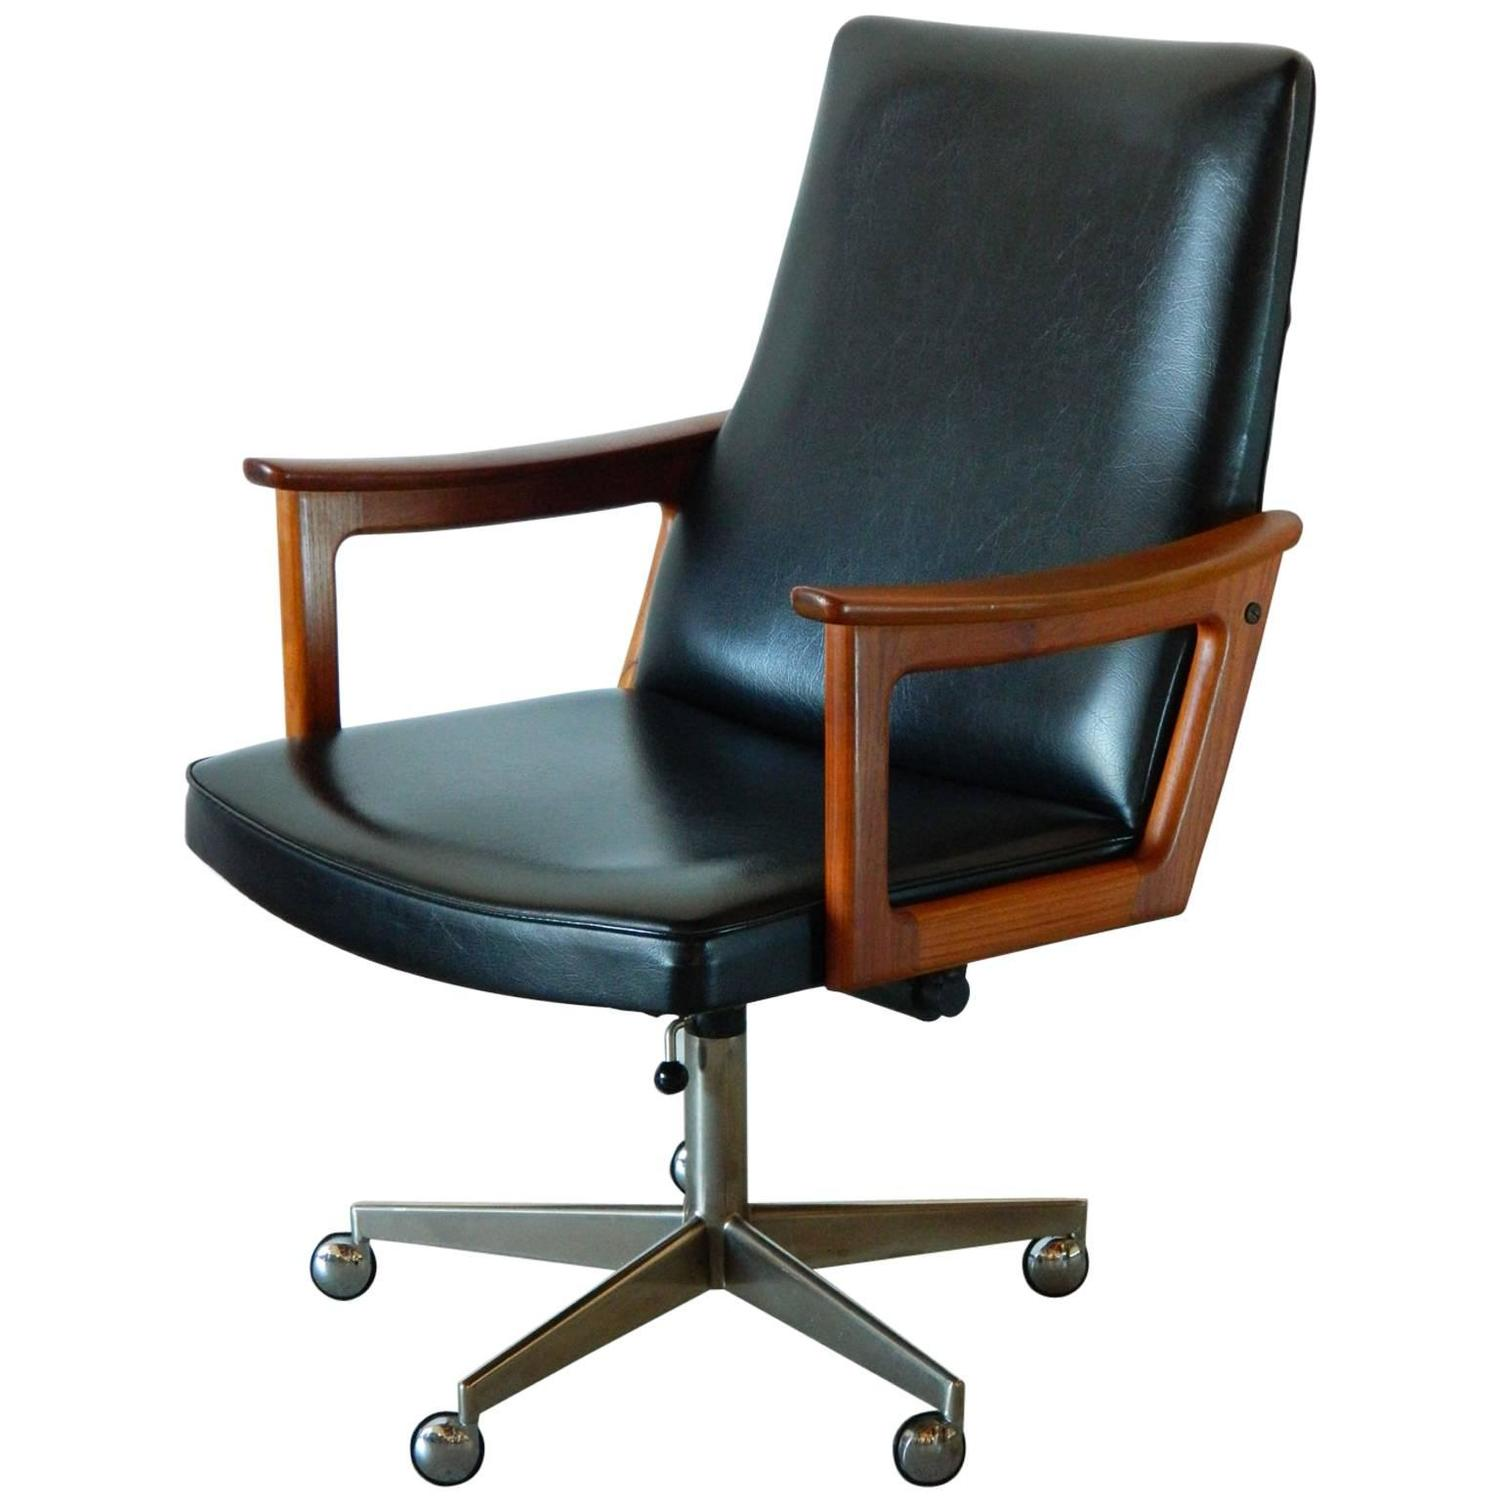 desk chair modern ergonomic toronto mid century danish teak in the style of